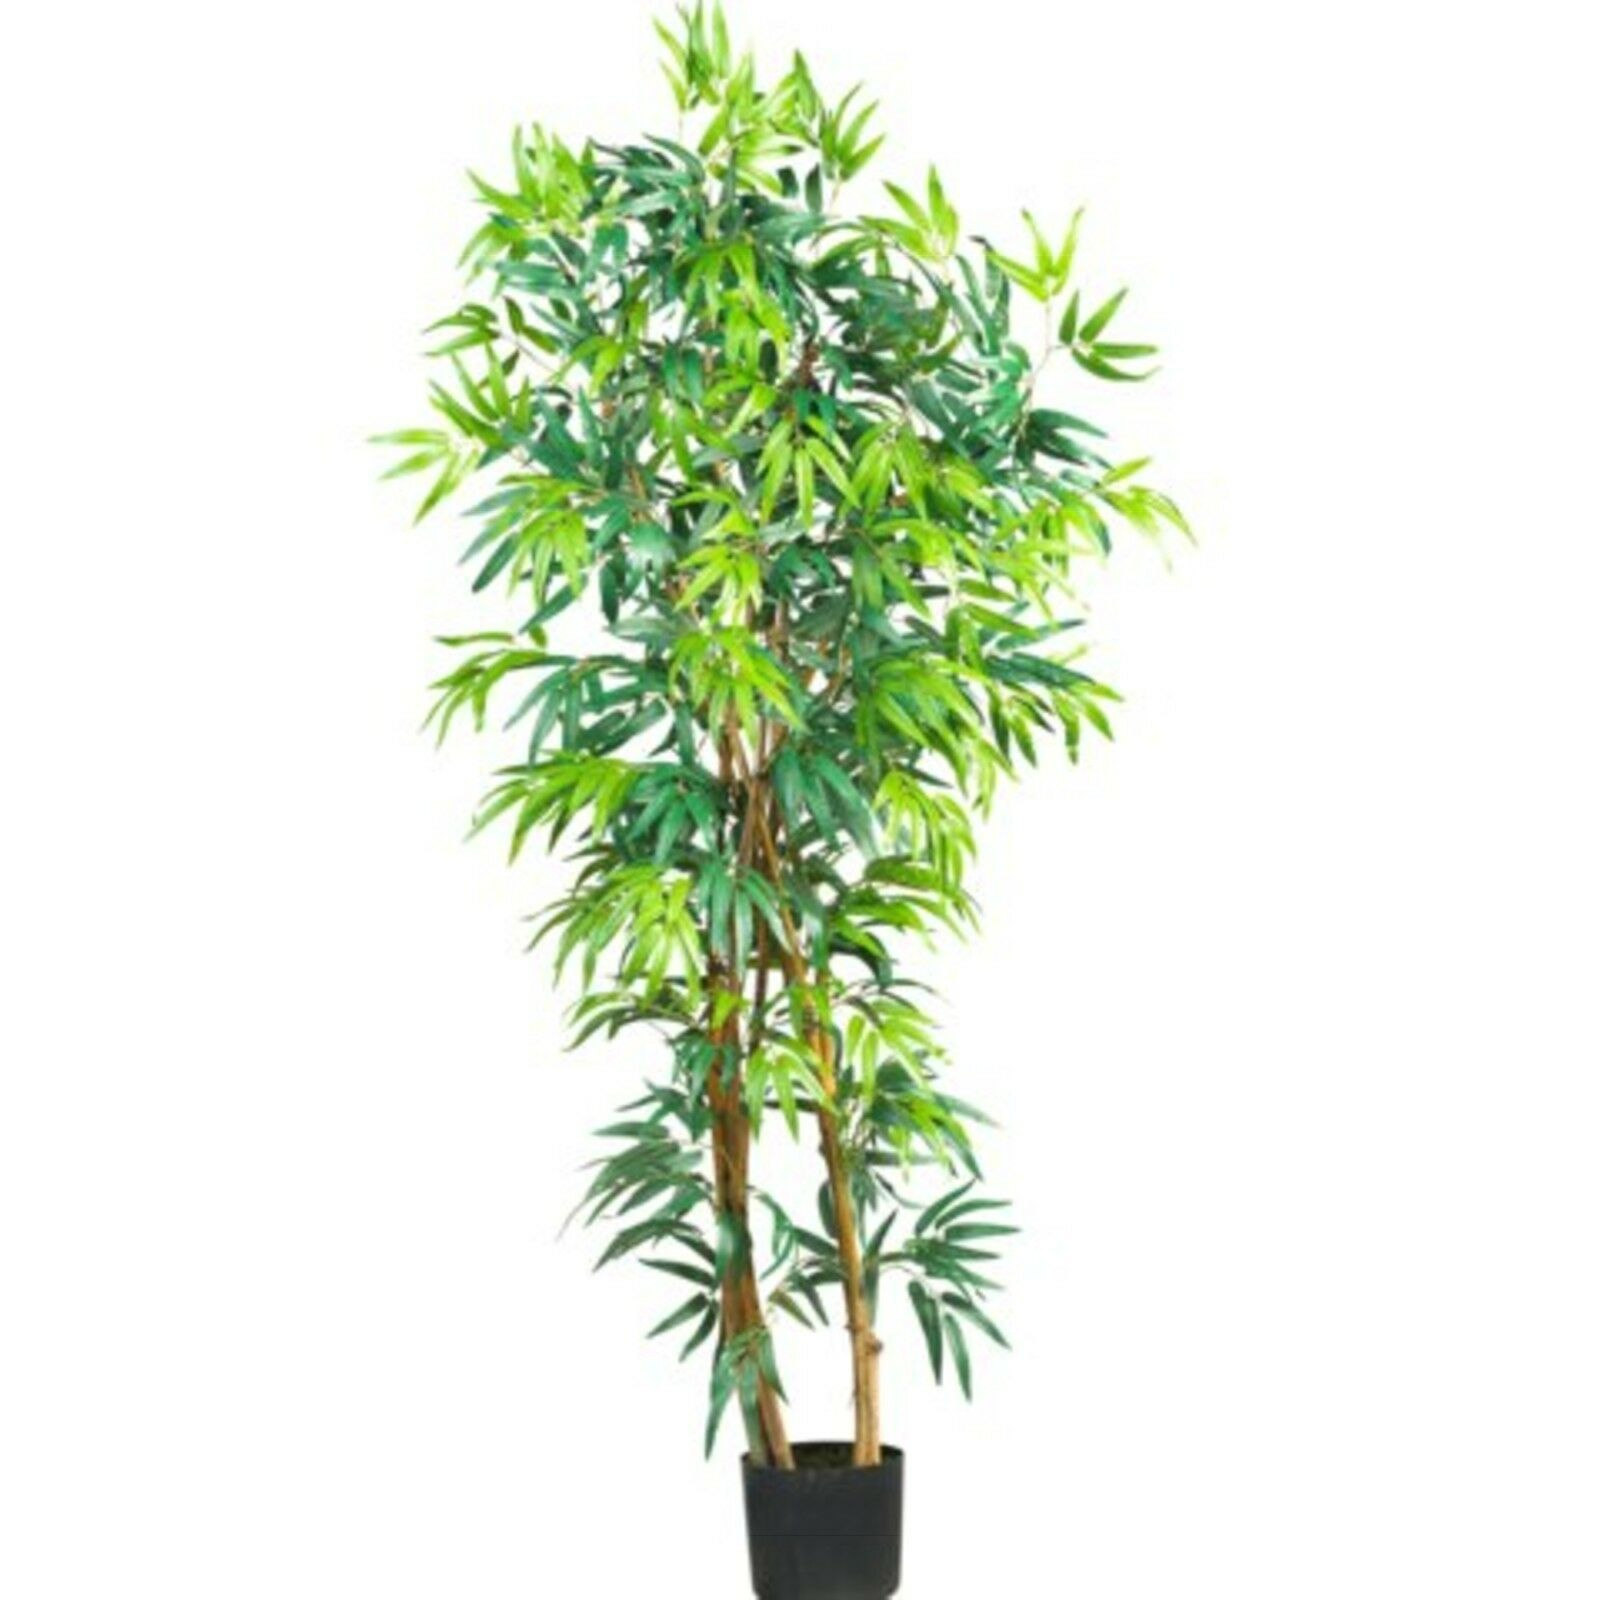 Decorative Natural Looking Artificial 5' Fancy Style Bamboo Silk Tree Plants